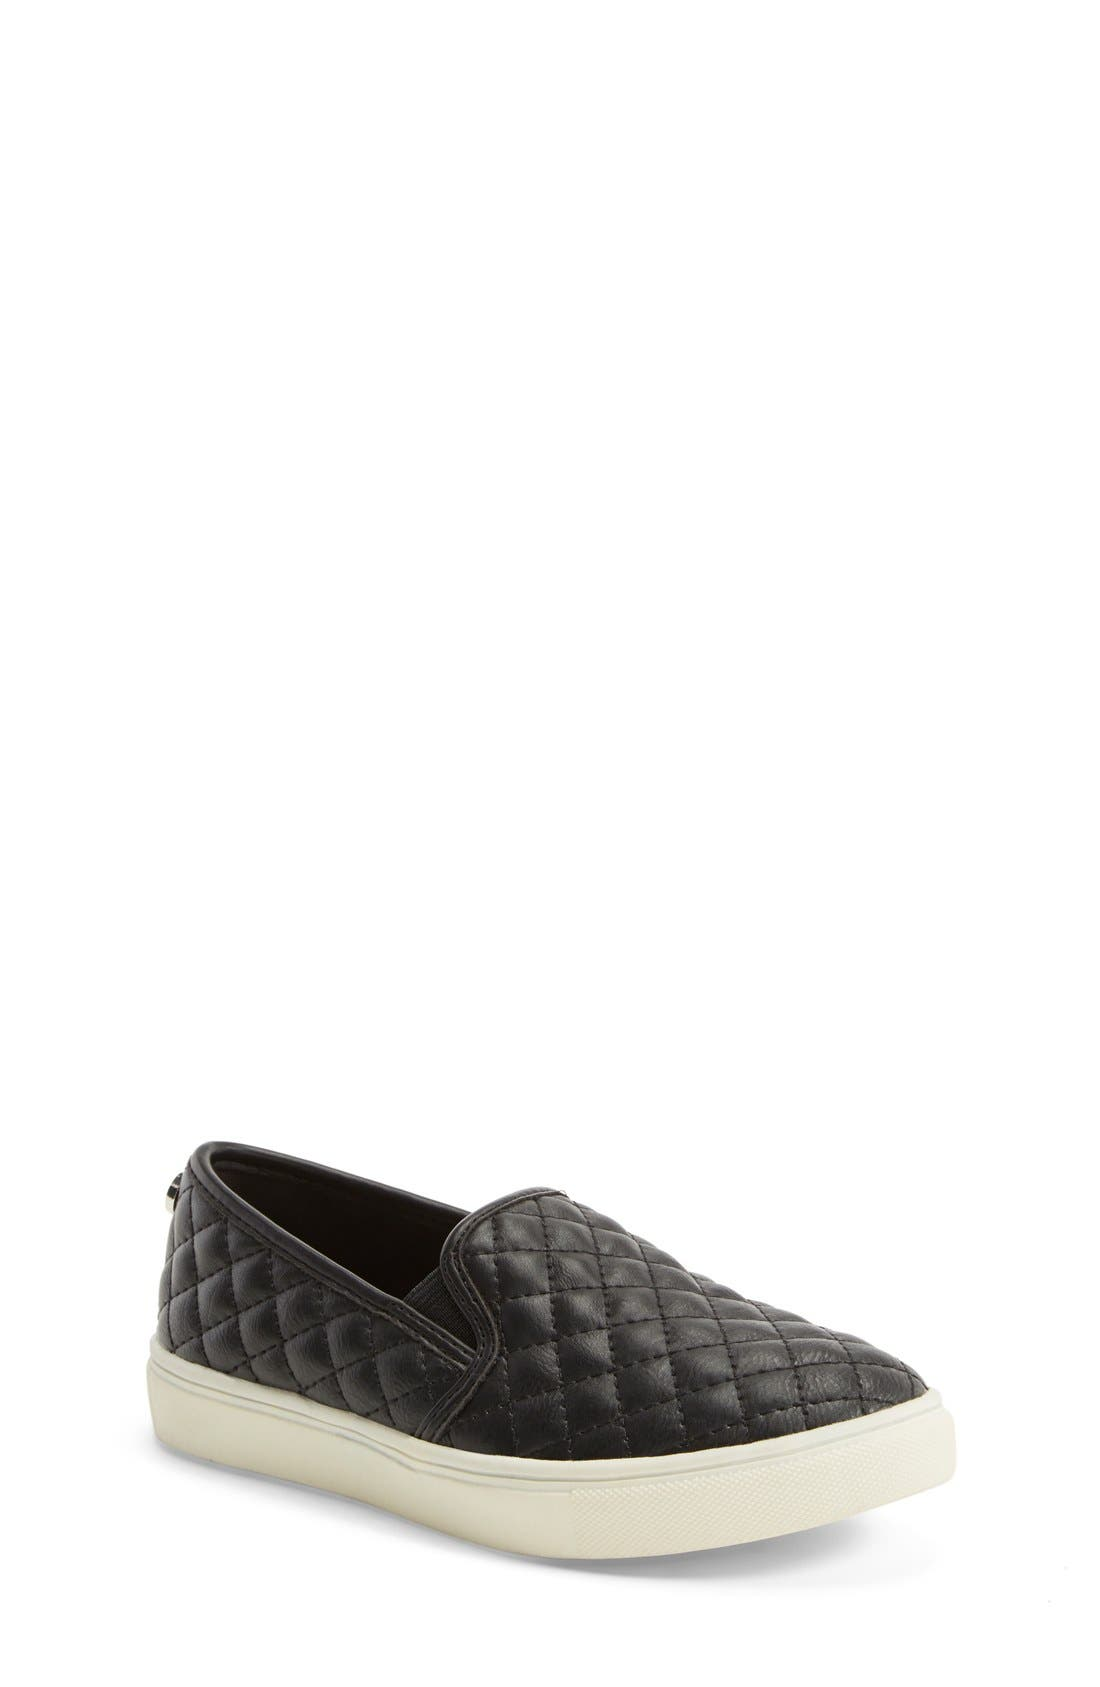 Steve Madden Ecentrcq Sneaker (Little Kid & Big Kid)